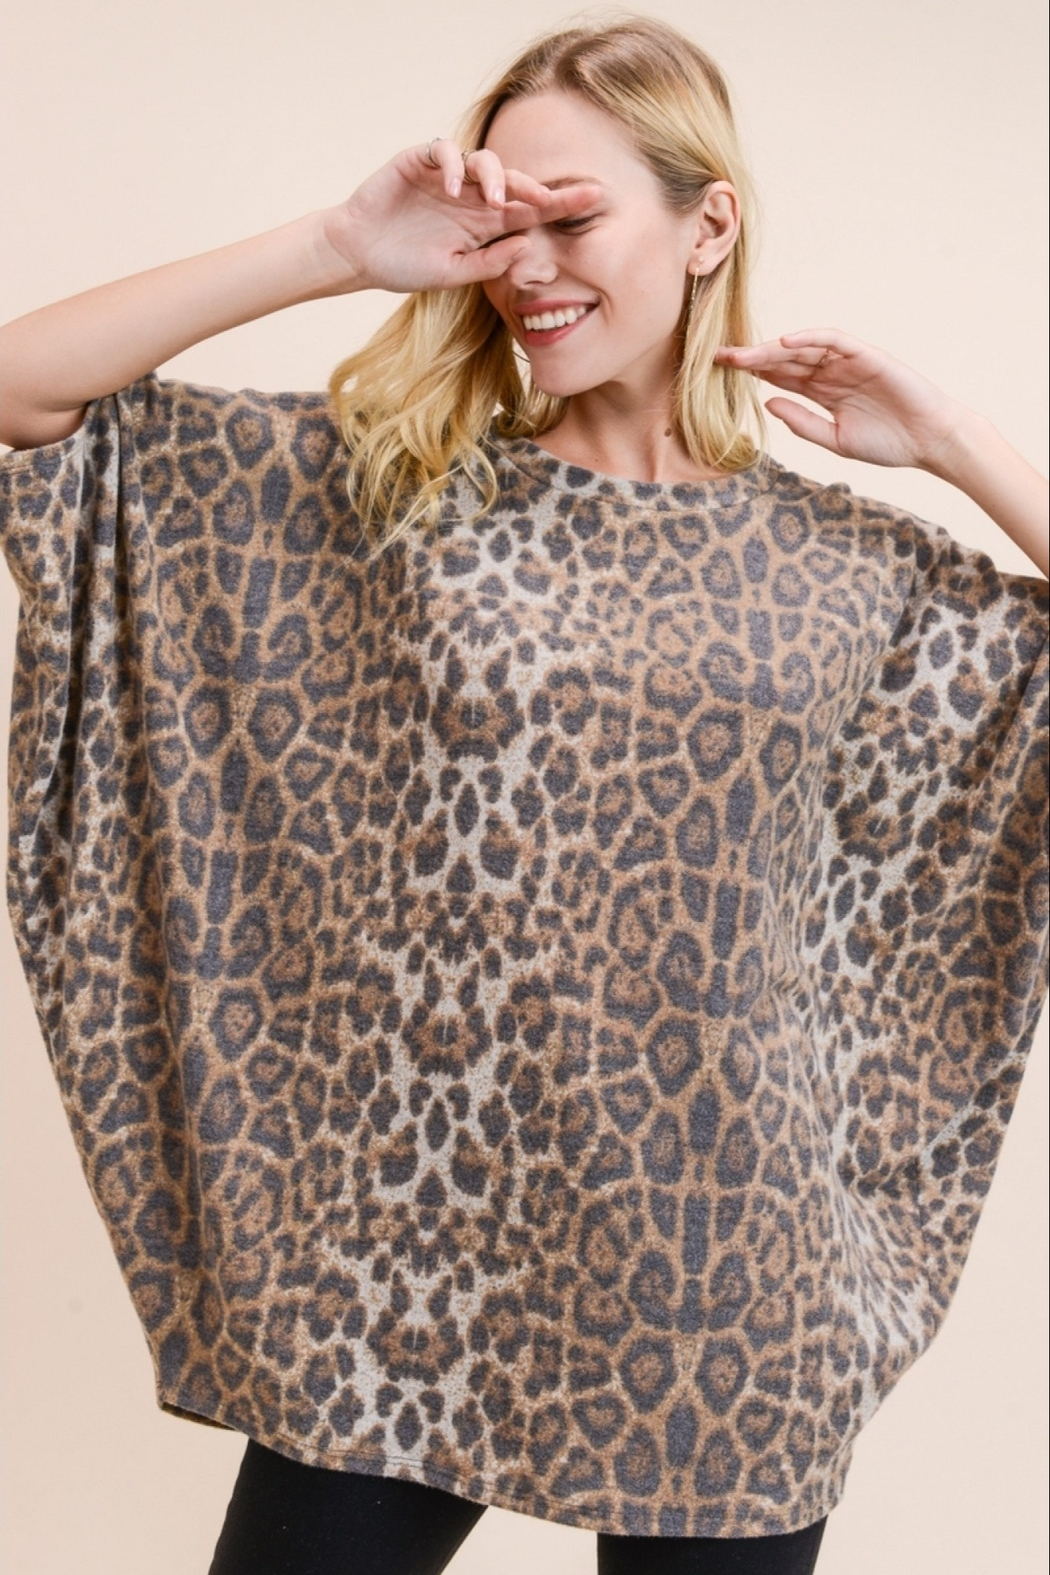 Jodifl LEOPARD PRINT TOP - Front Cropped Image